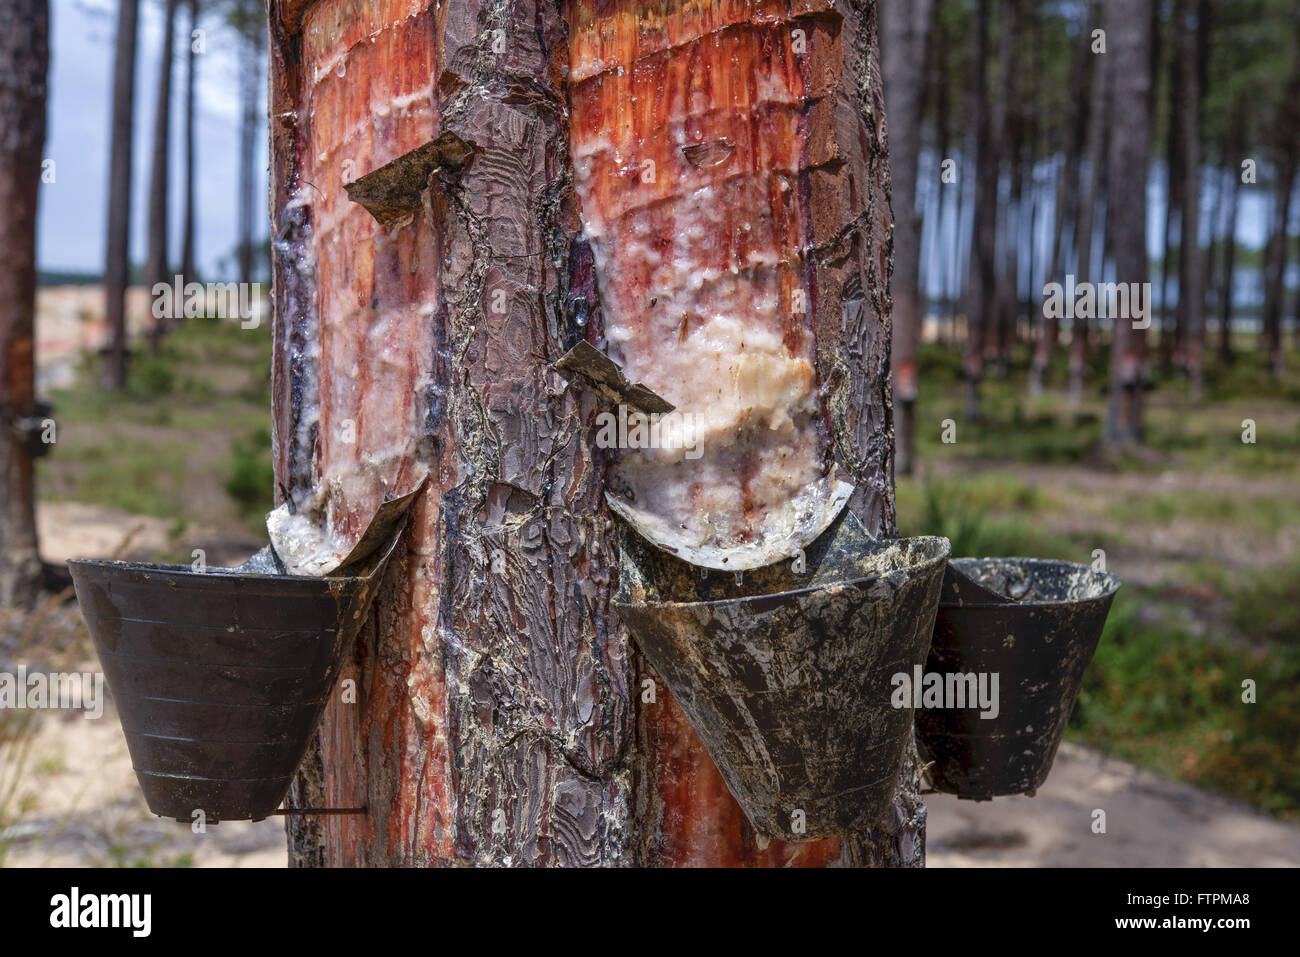 Pine plantation to extraction of resin for production of solvents - Stock Image